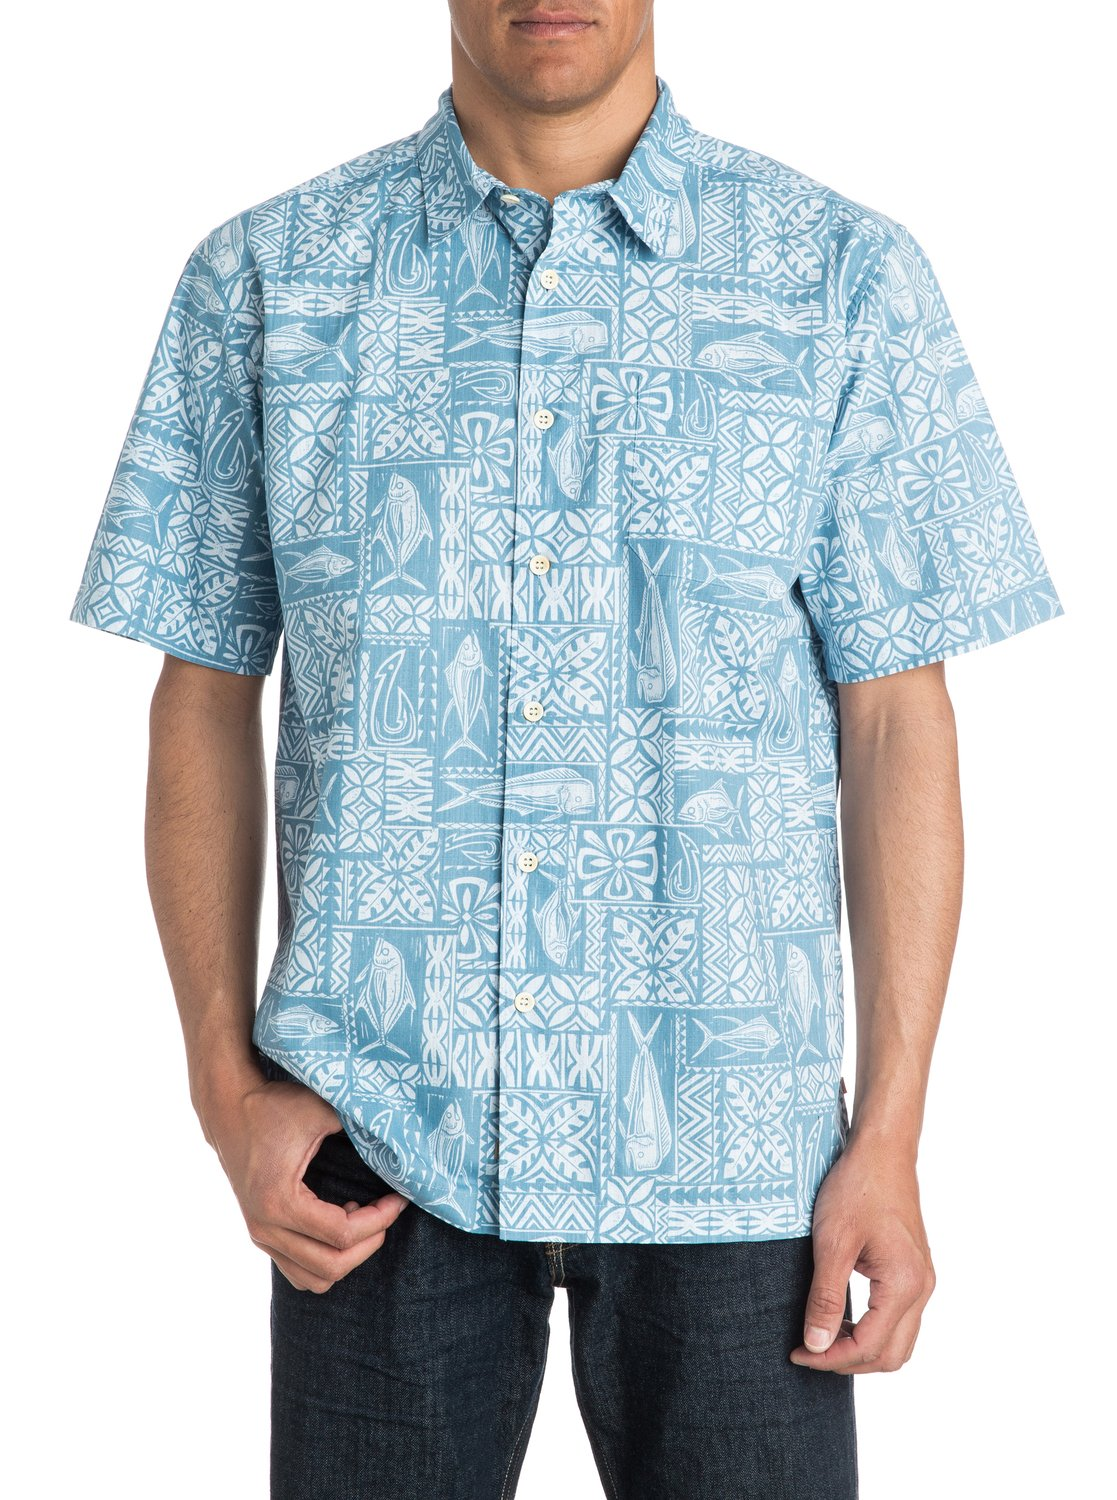 Today's popular retro Rockabilly shirt styles include the button down bowling shirt, long sleeve western shirt, and vintage workwear shirts with themes of hot rods, skulls, music, and classic cars. The most iconic s men's shirt is the tropical Aloha Hawaiian shirt.